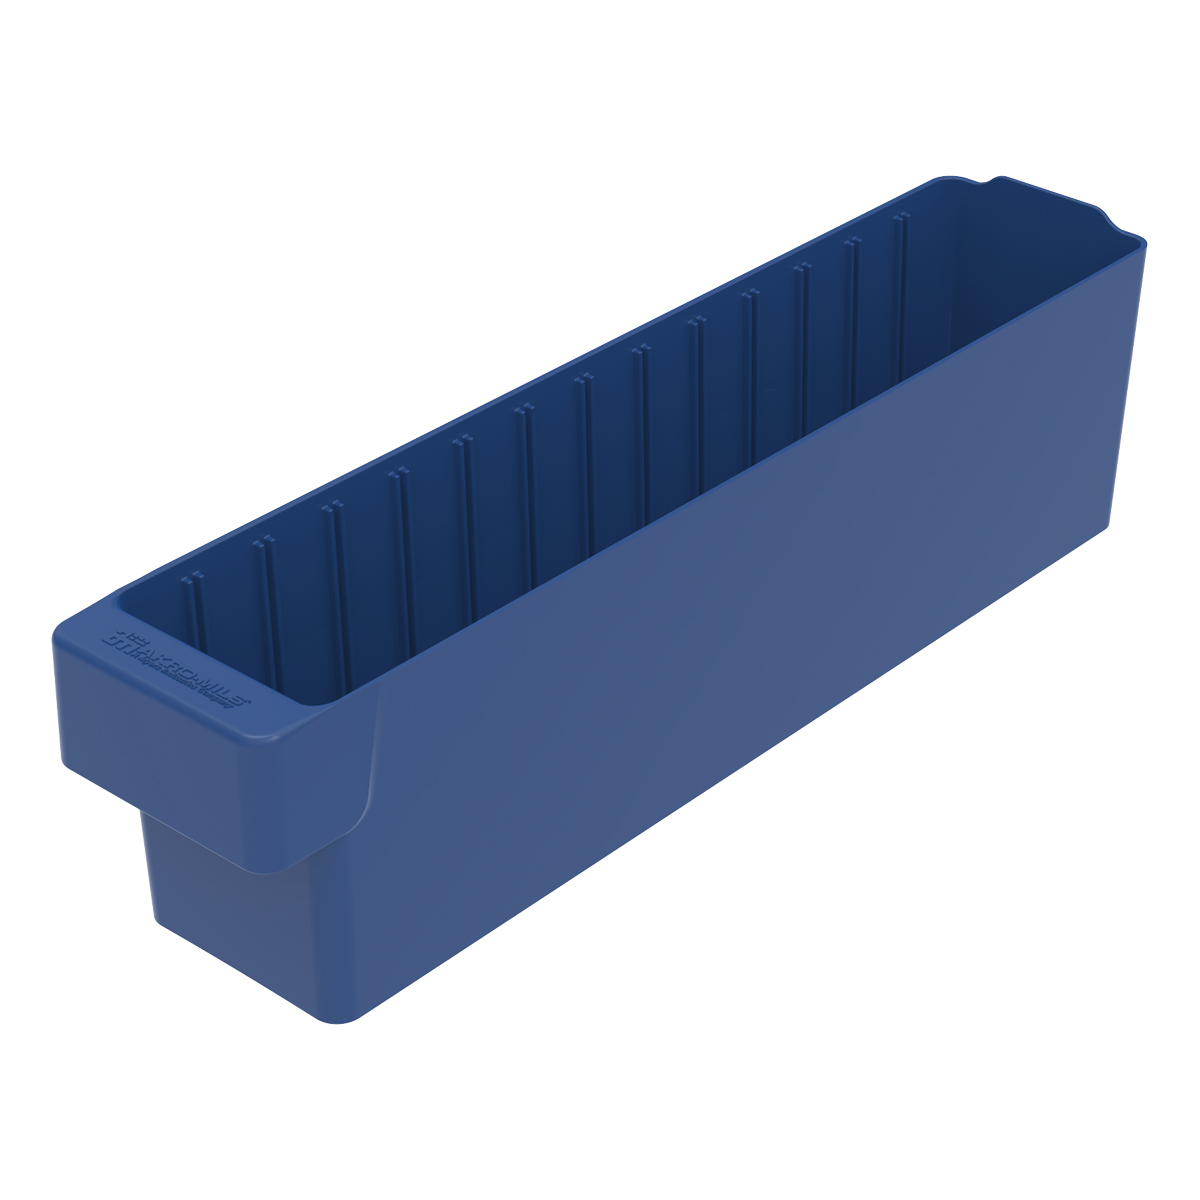 AkroDrawer 17-5/8 x 3-3/4 x 4-5/8, Blue (31148BLU).  This item sold in carton quantities of 6.